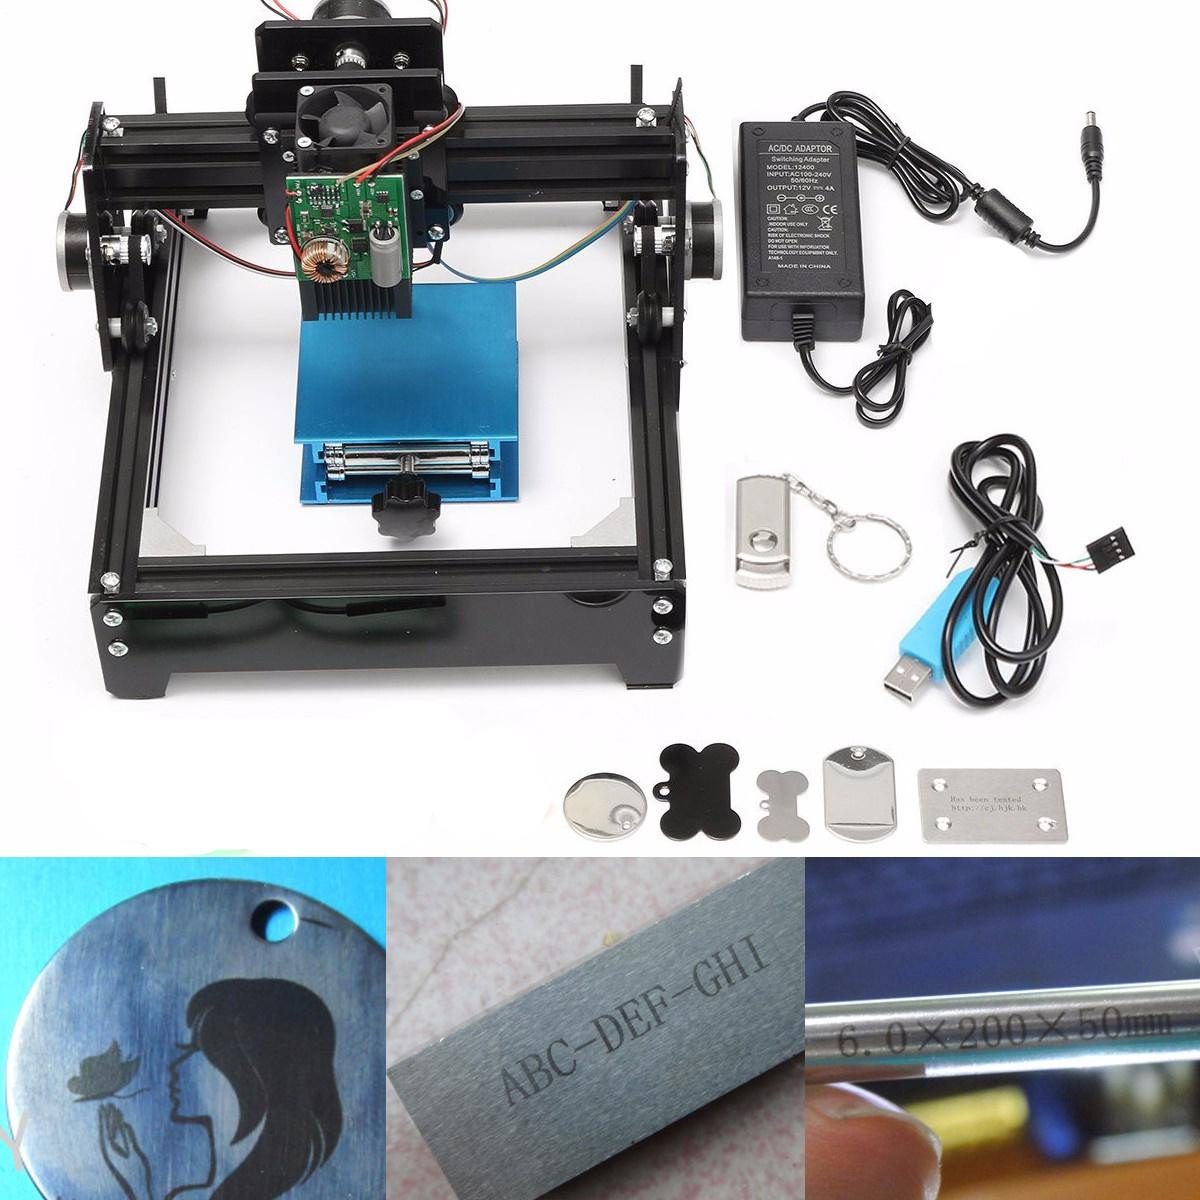 10W 15W USB Laser Cutter Metal Laser Engraver CNC Router DIY Marking Machine For Metal Stone Wood Engraving Area 14 X 20cm